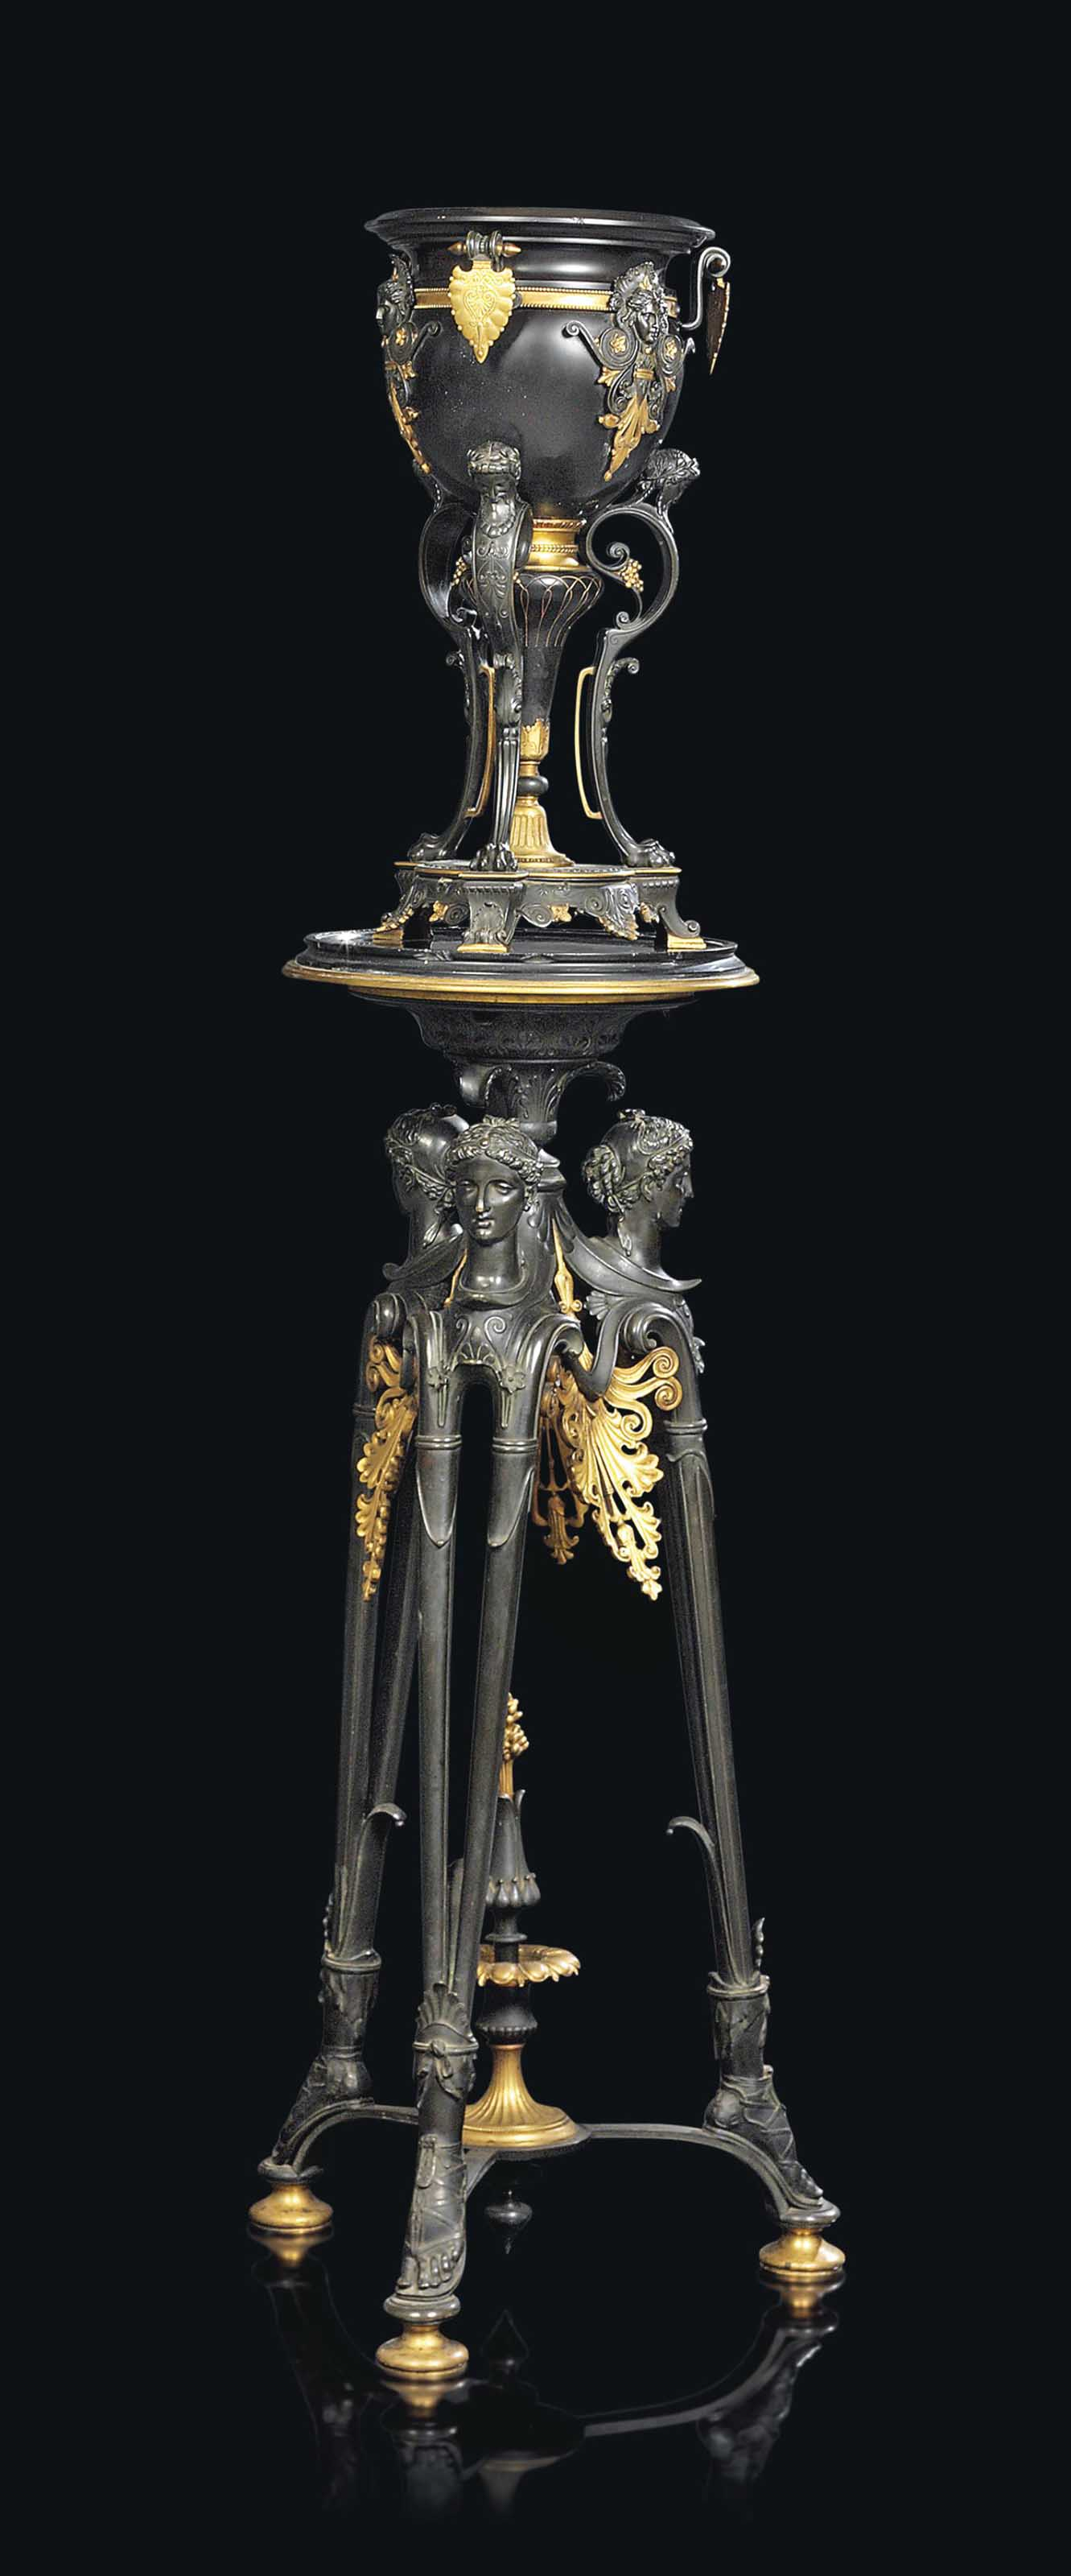 A FRENCH GILT AND PATINATED-BRONZE JARDINIERE ON TRIPOD STAND